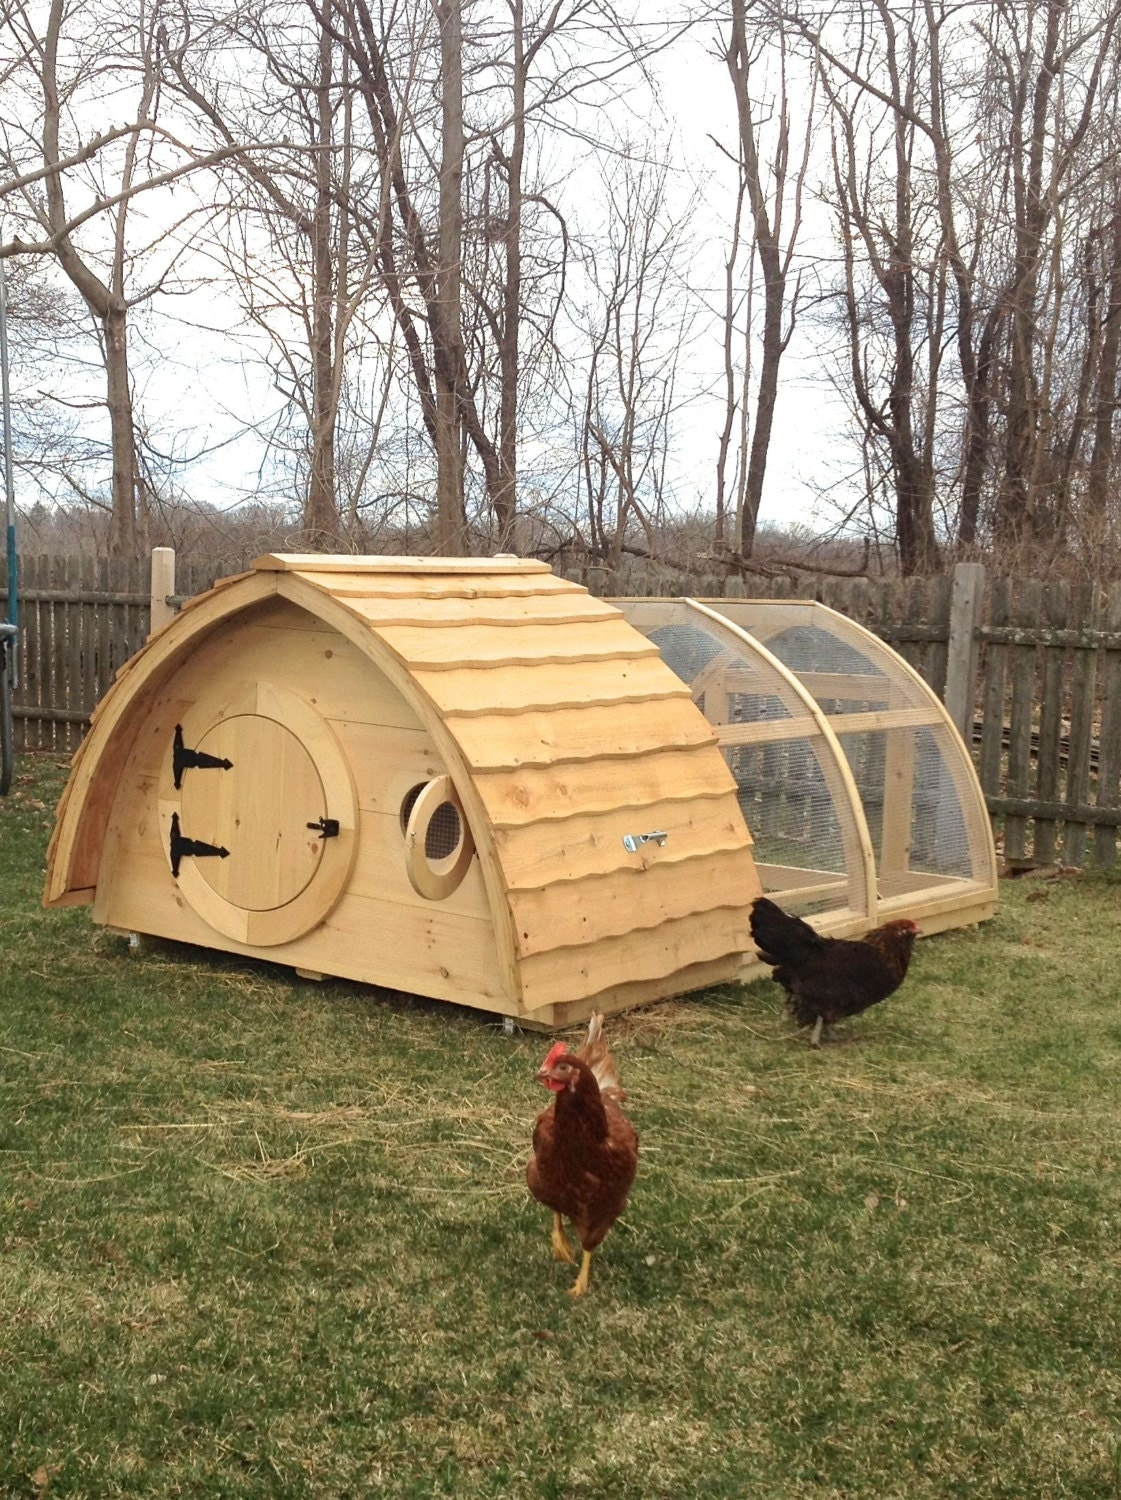 Hobbit hole chicken coop attached run for up to 6 birds for Chicken run for 6 chickens